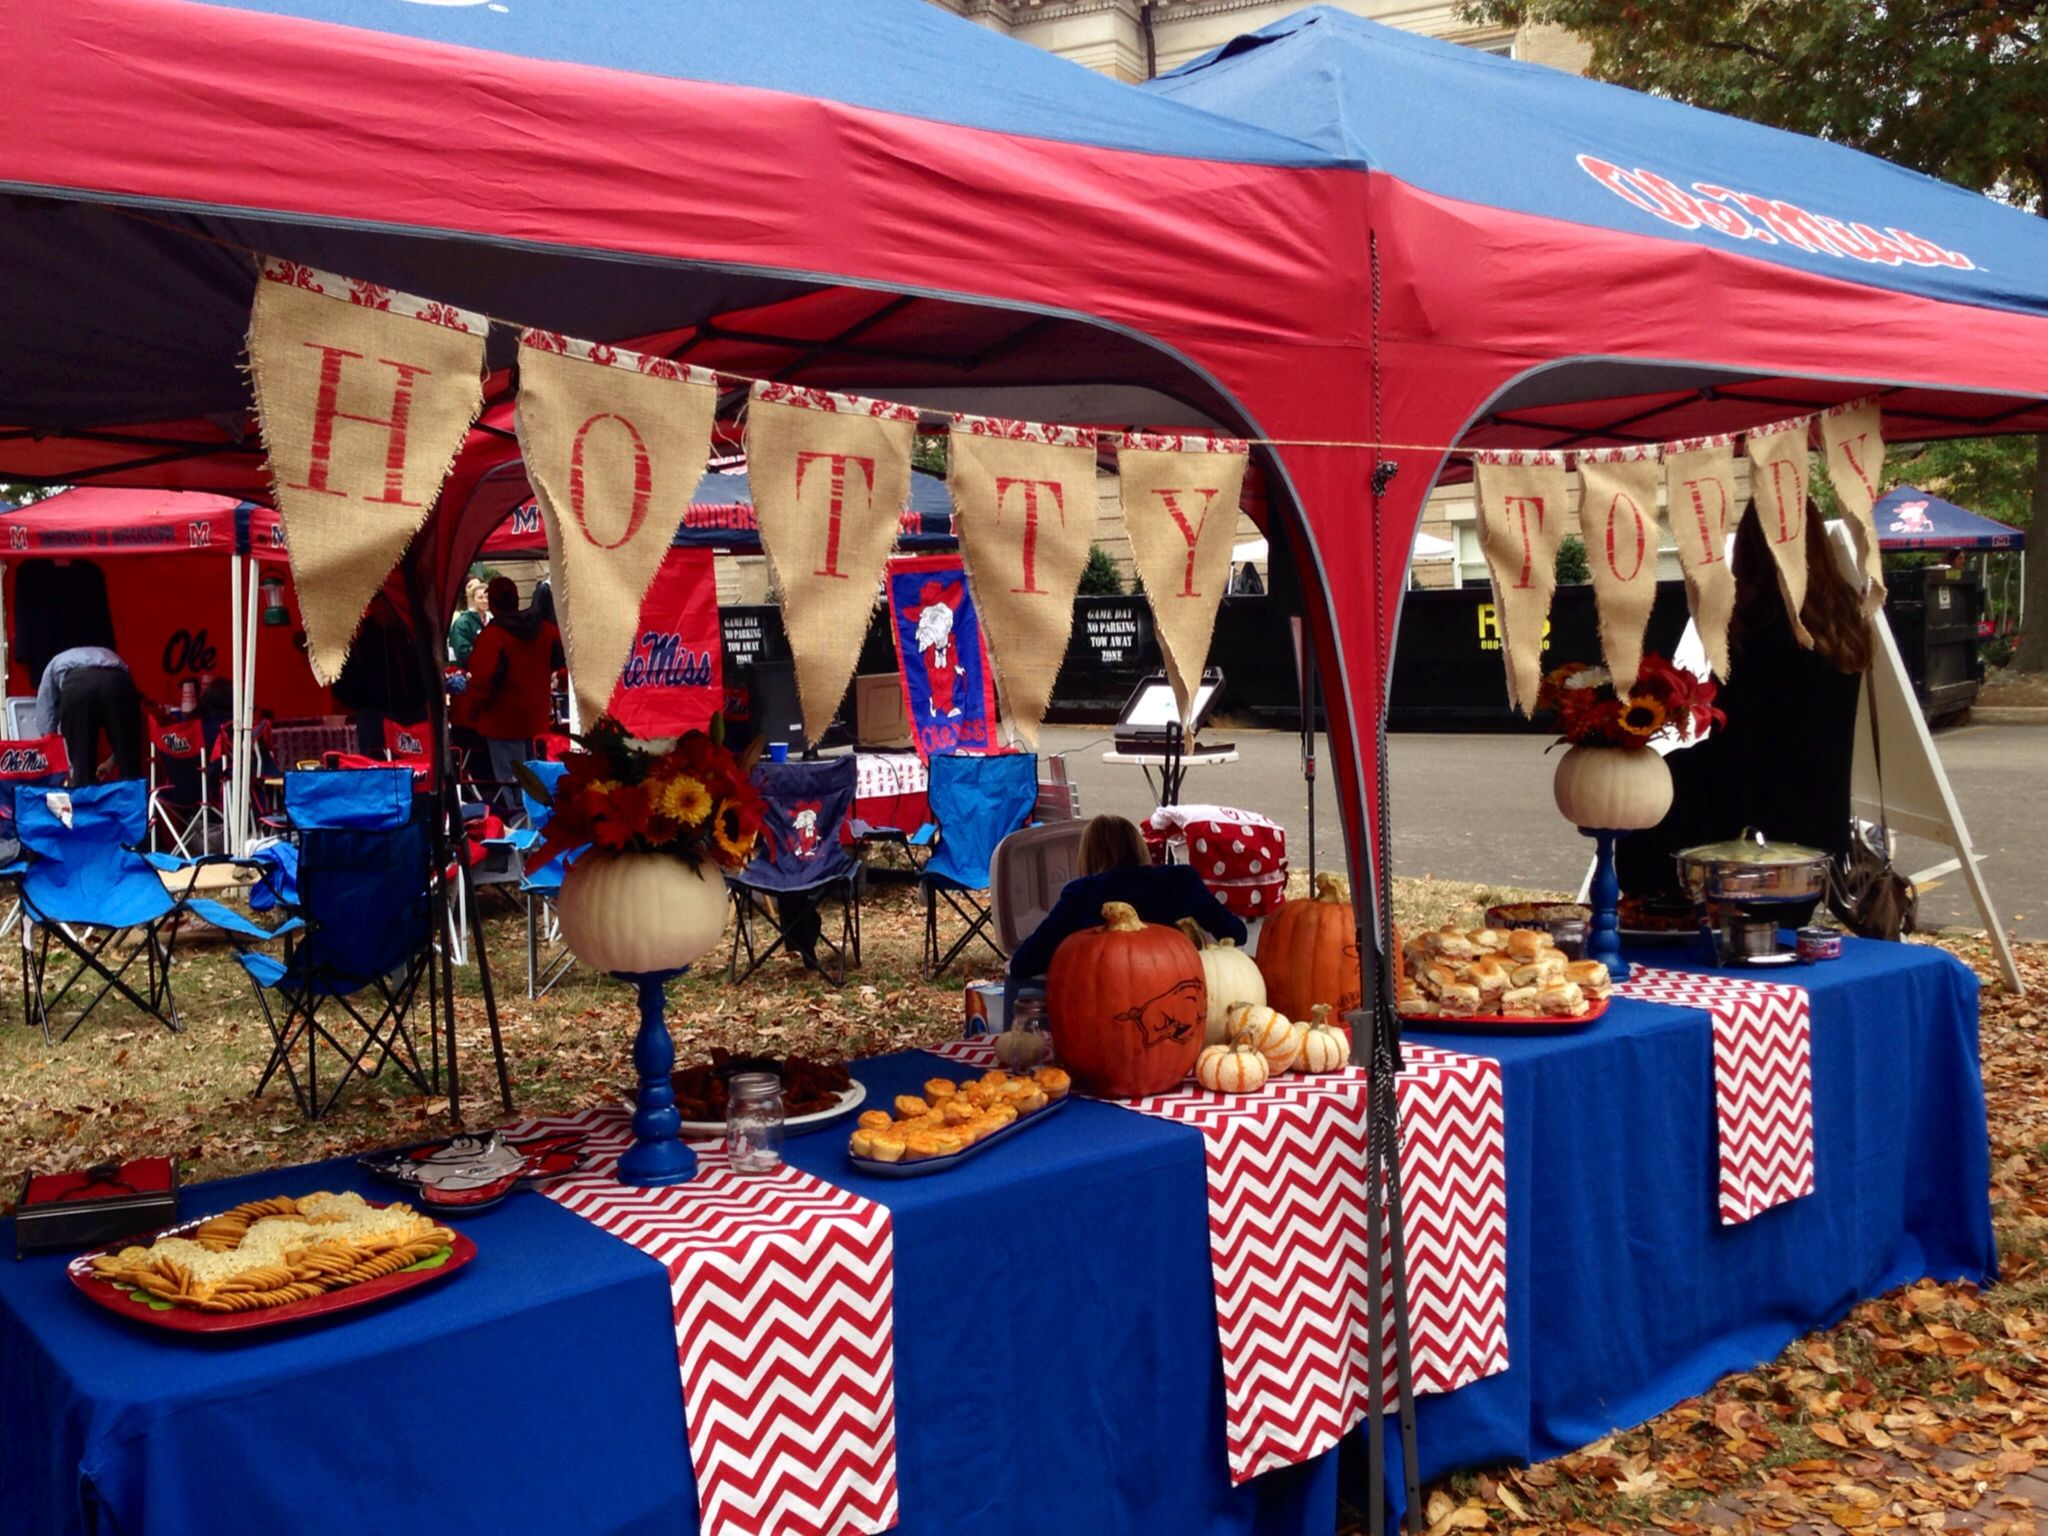 Clemson Tailgate Tablecloth Football Games Tailgating